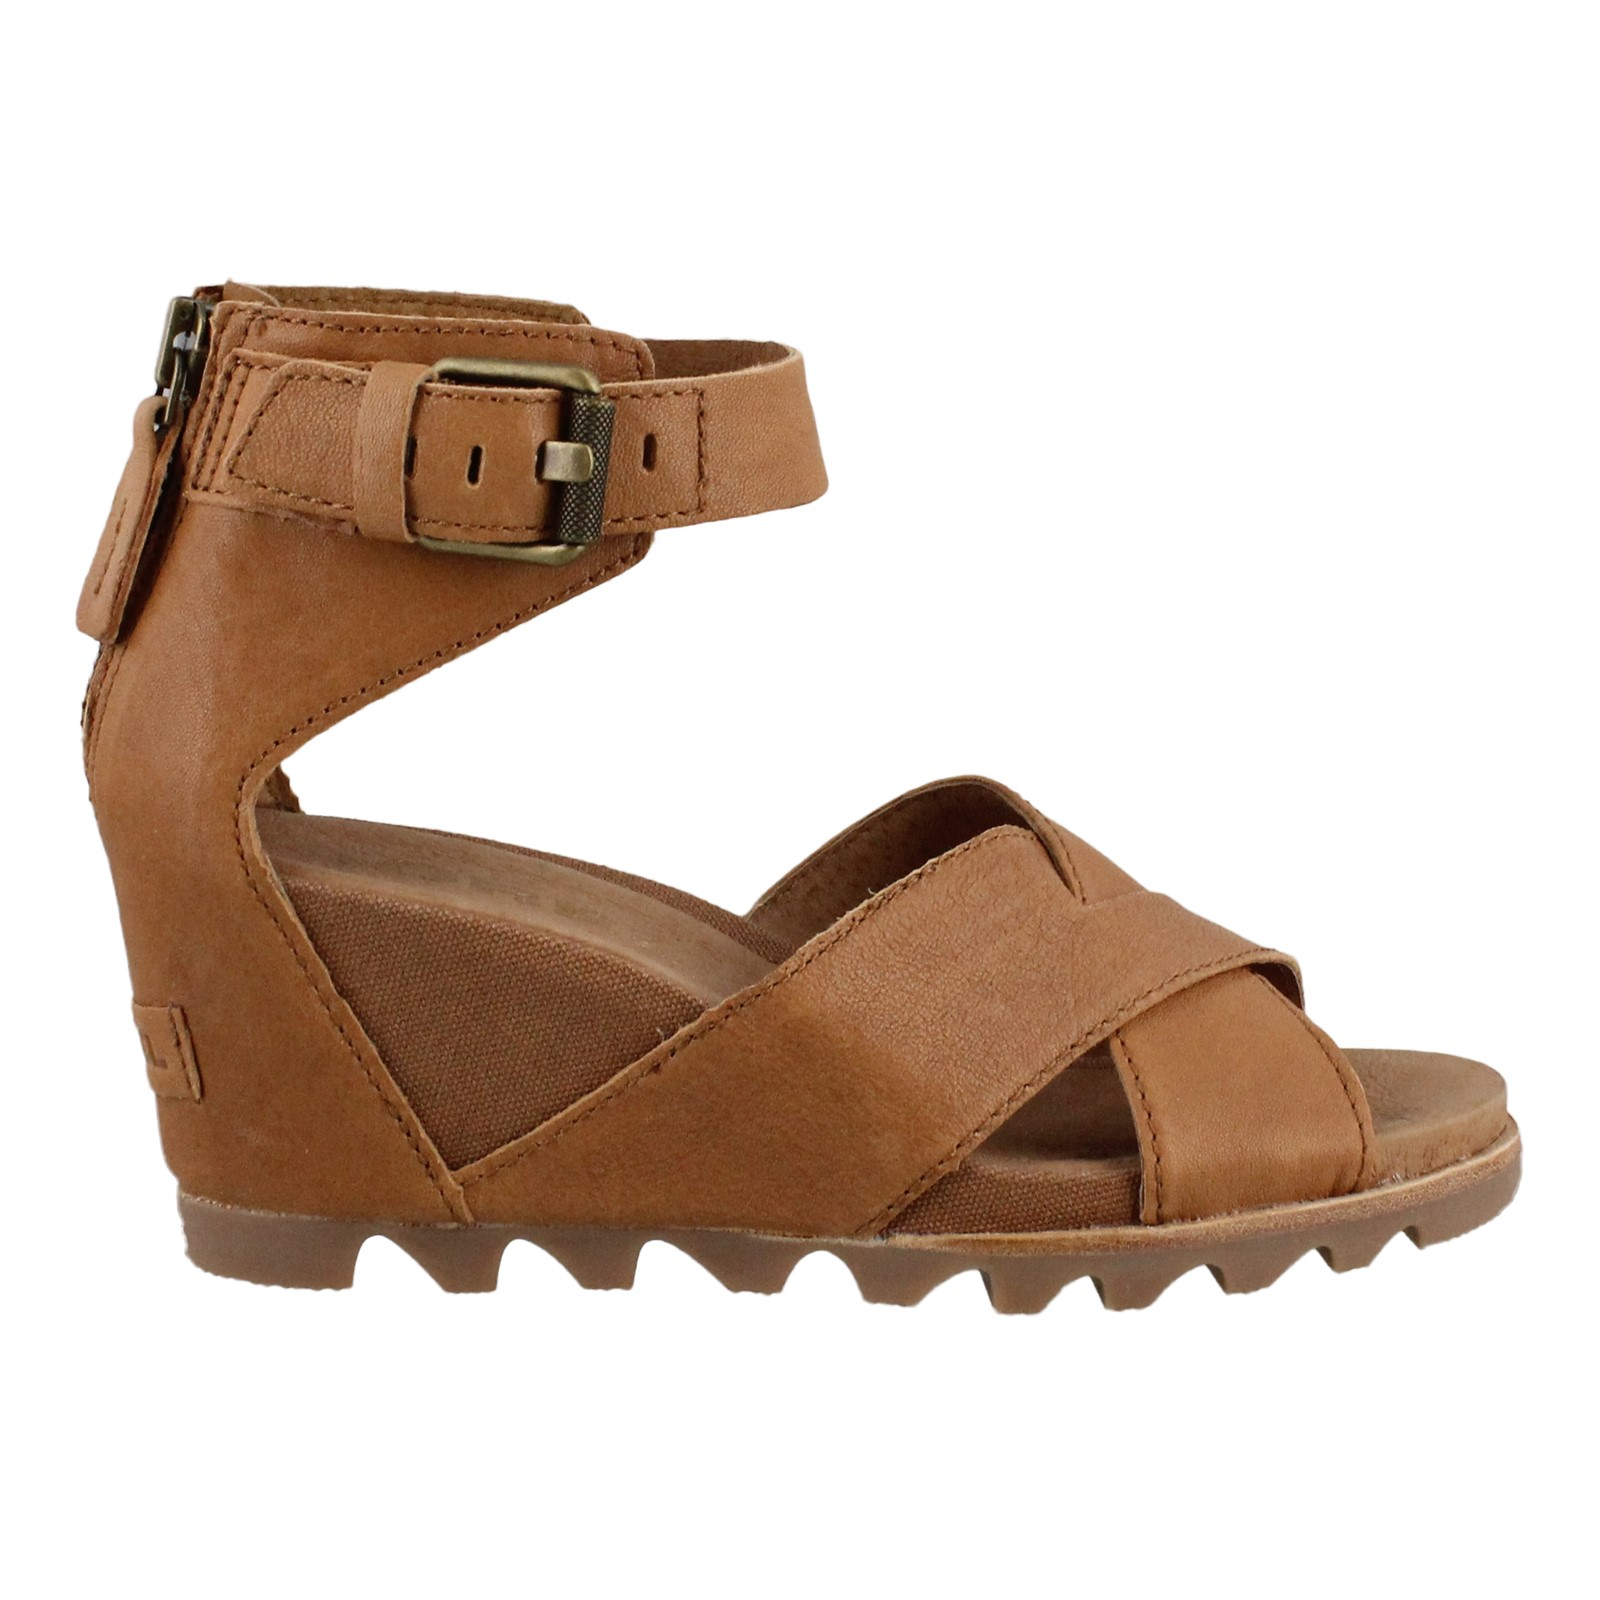 Women's Joanie II Wedge Sandal